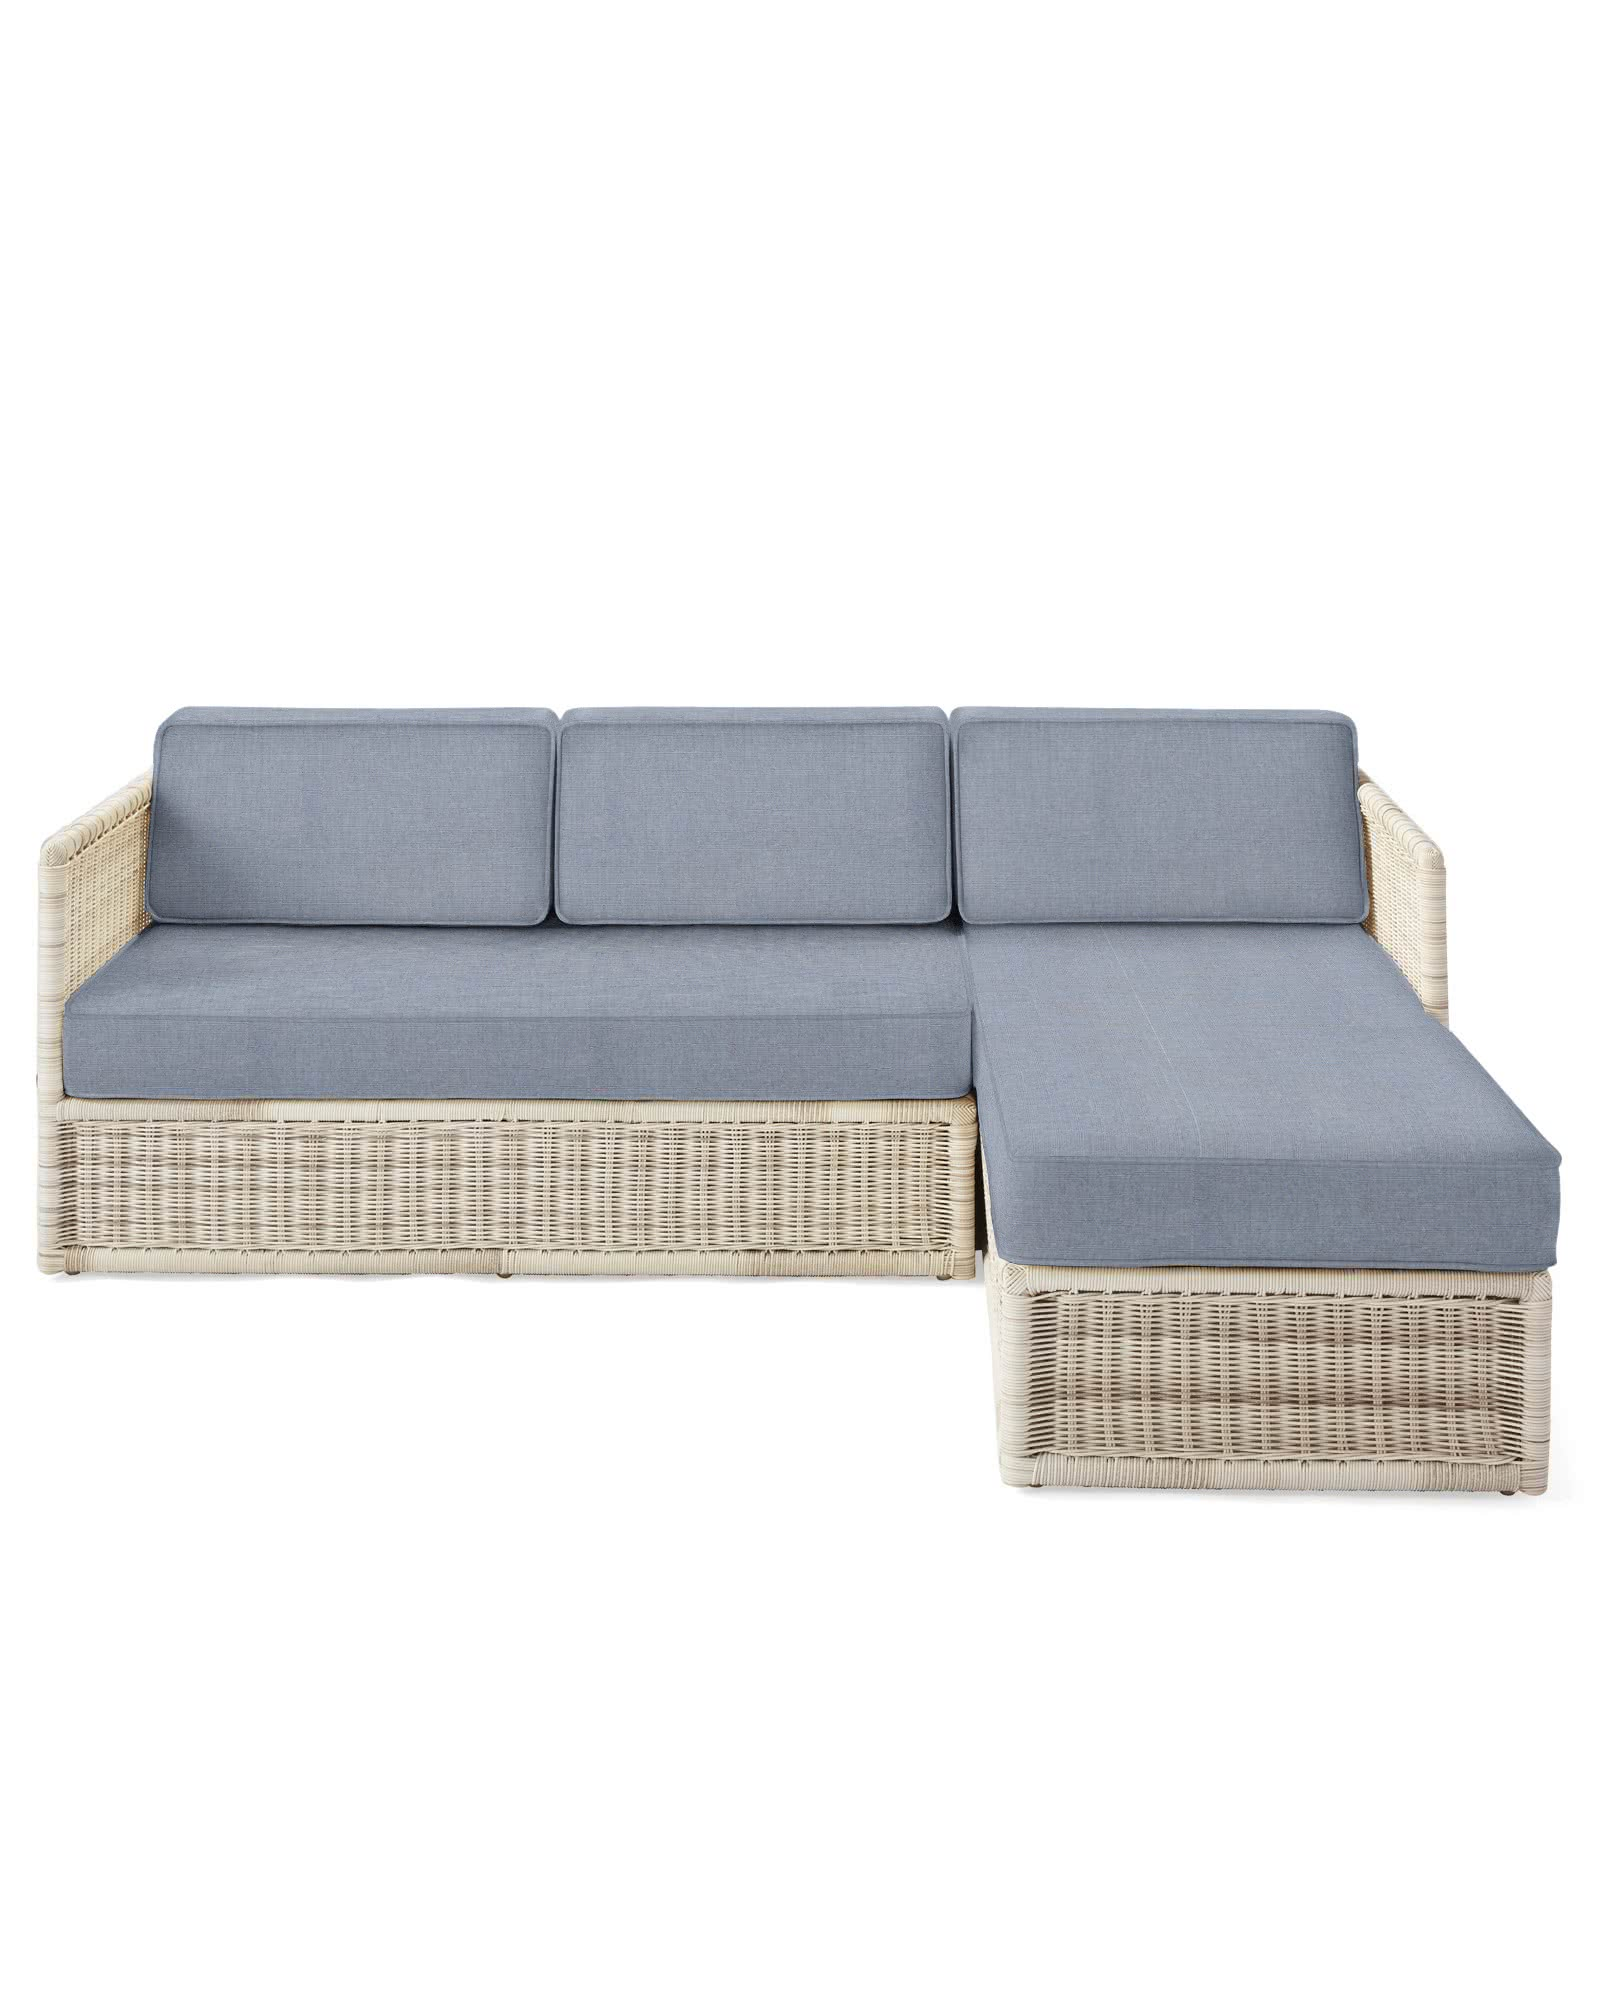 Pacifica Right-Facing Chaise Sectional - Driftwood,